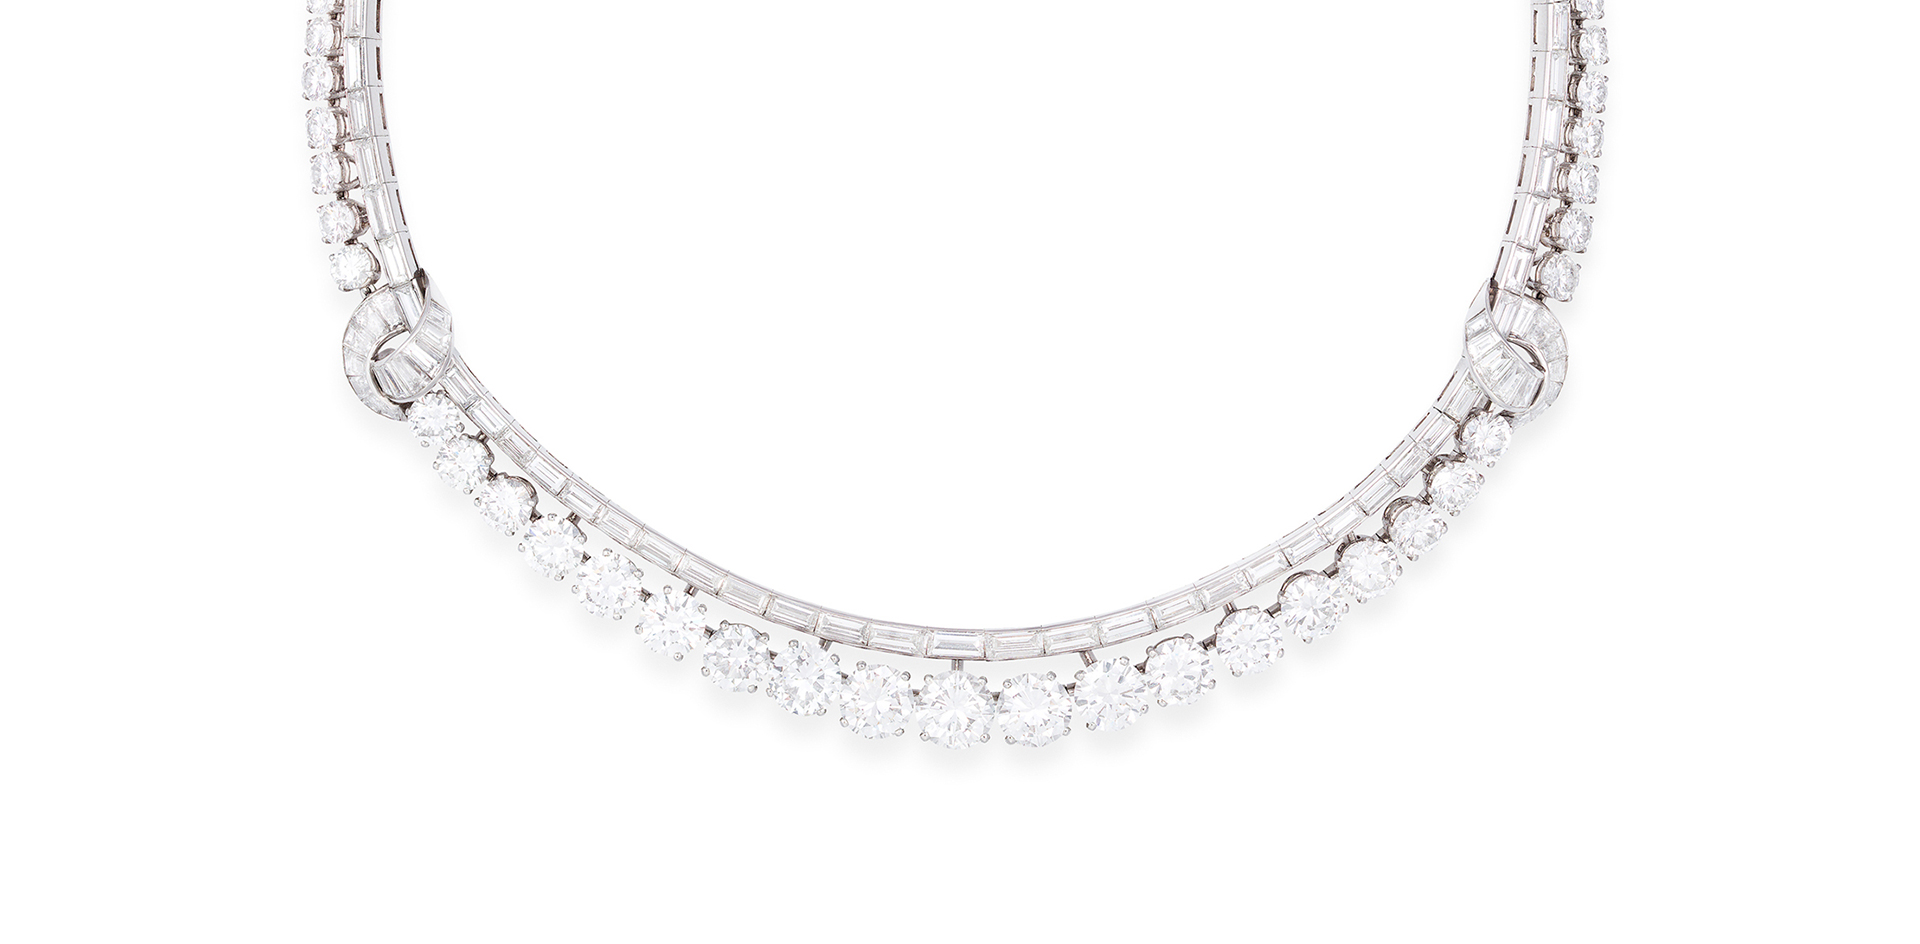 A MAGNIFICENT DIAMOND RIVIERE NECKLACE, BY MAUBOUSSIN, CIRCA 1955 - Sold For €187,000